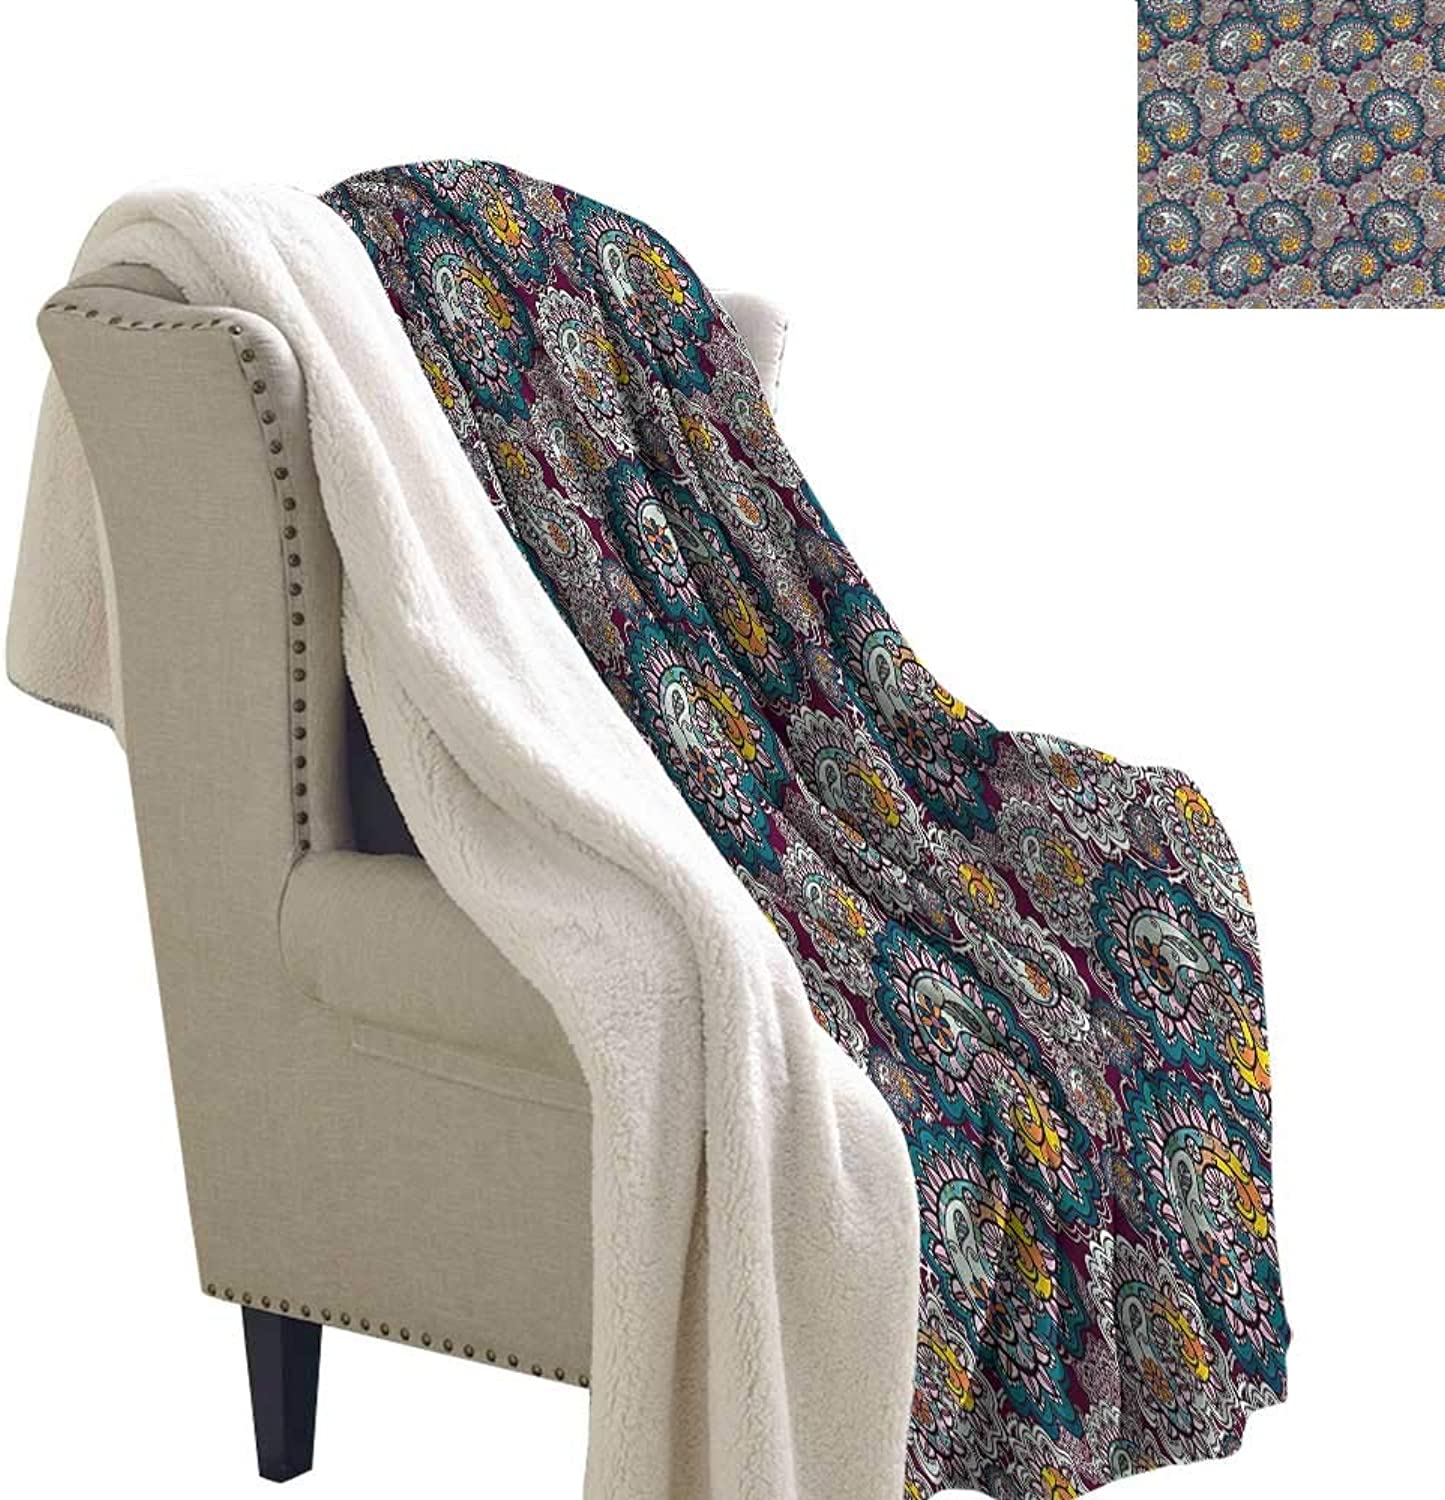 Beihai1Sun Paisley Blanket Small Quilt Vintage Lively Arrangement Degrees of Comfort Weighted Blanket 60x32 Inch